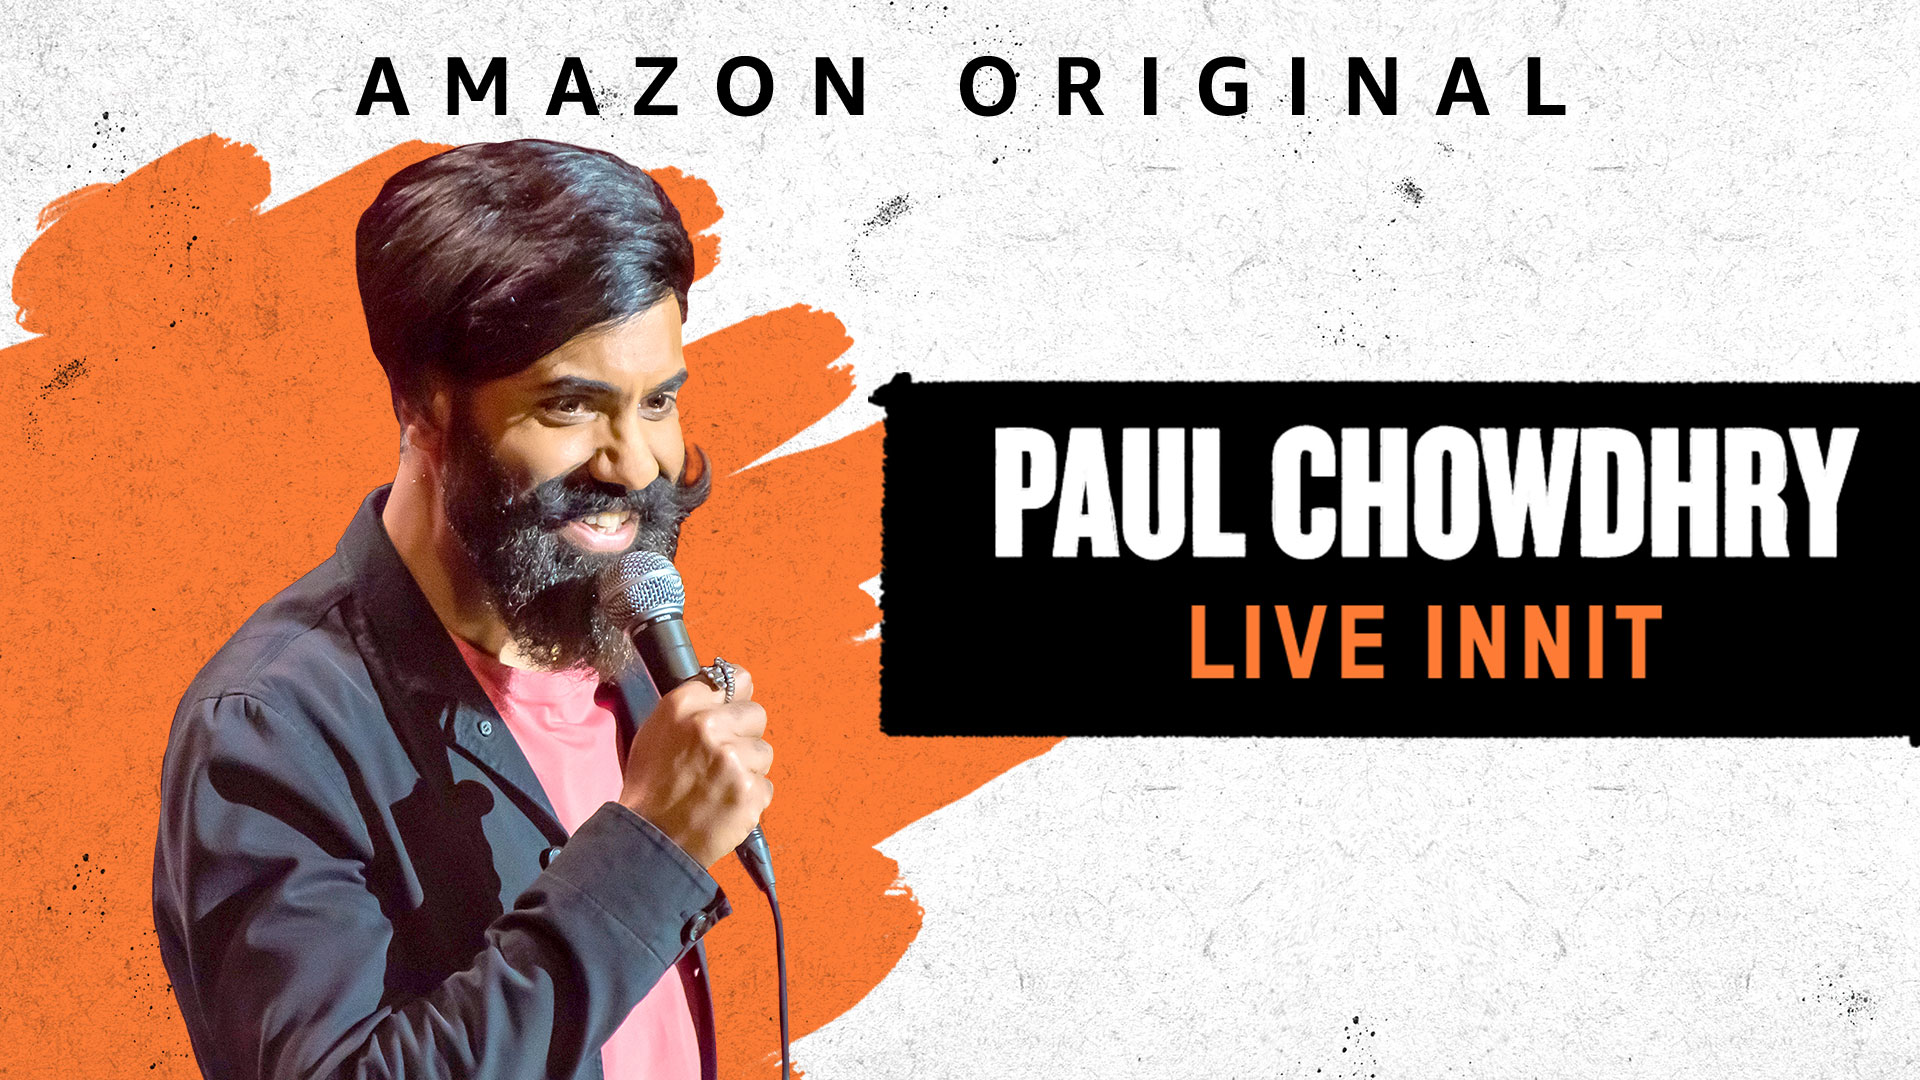 Paul Chowdhry Live Innit